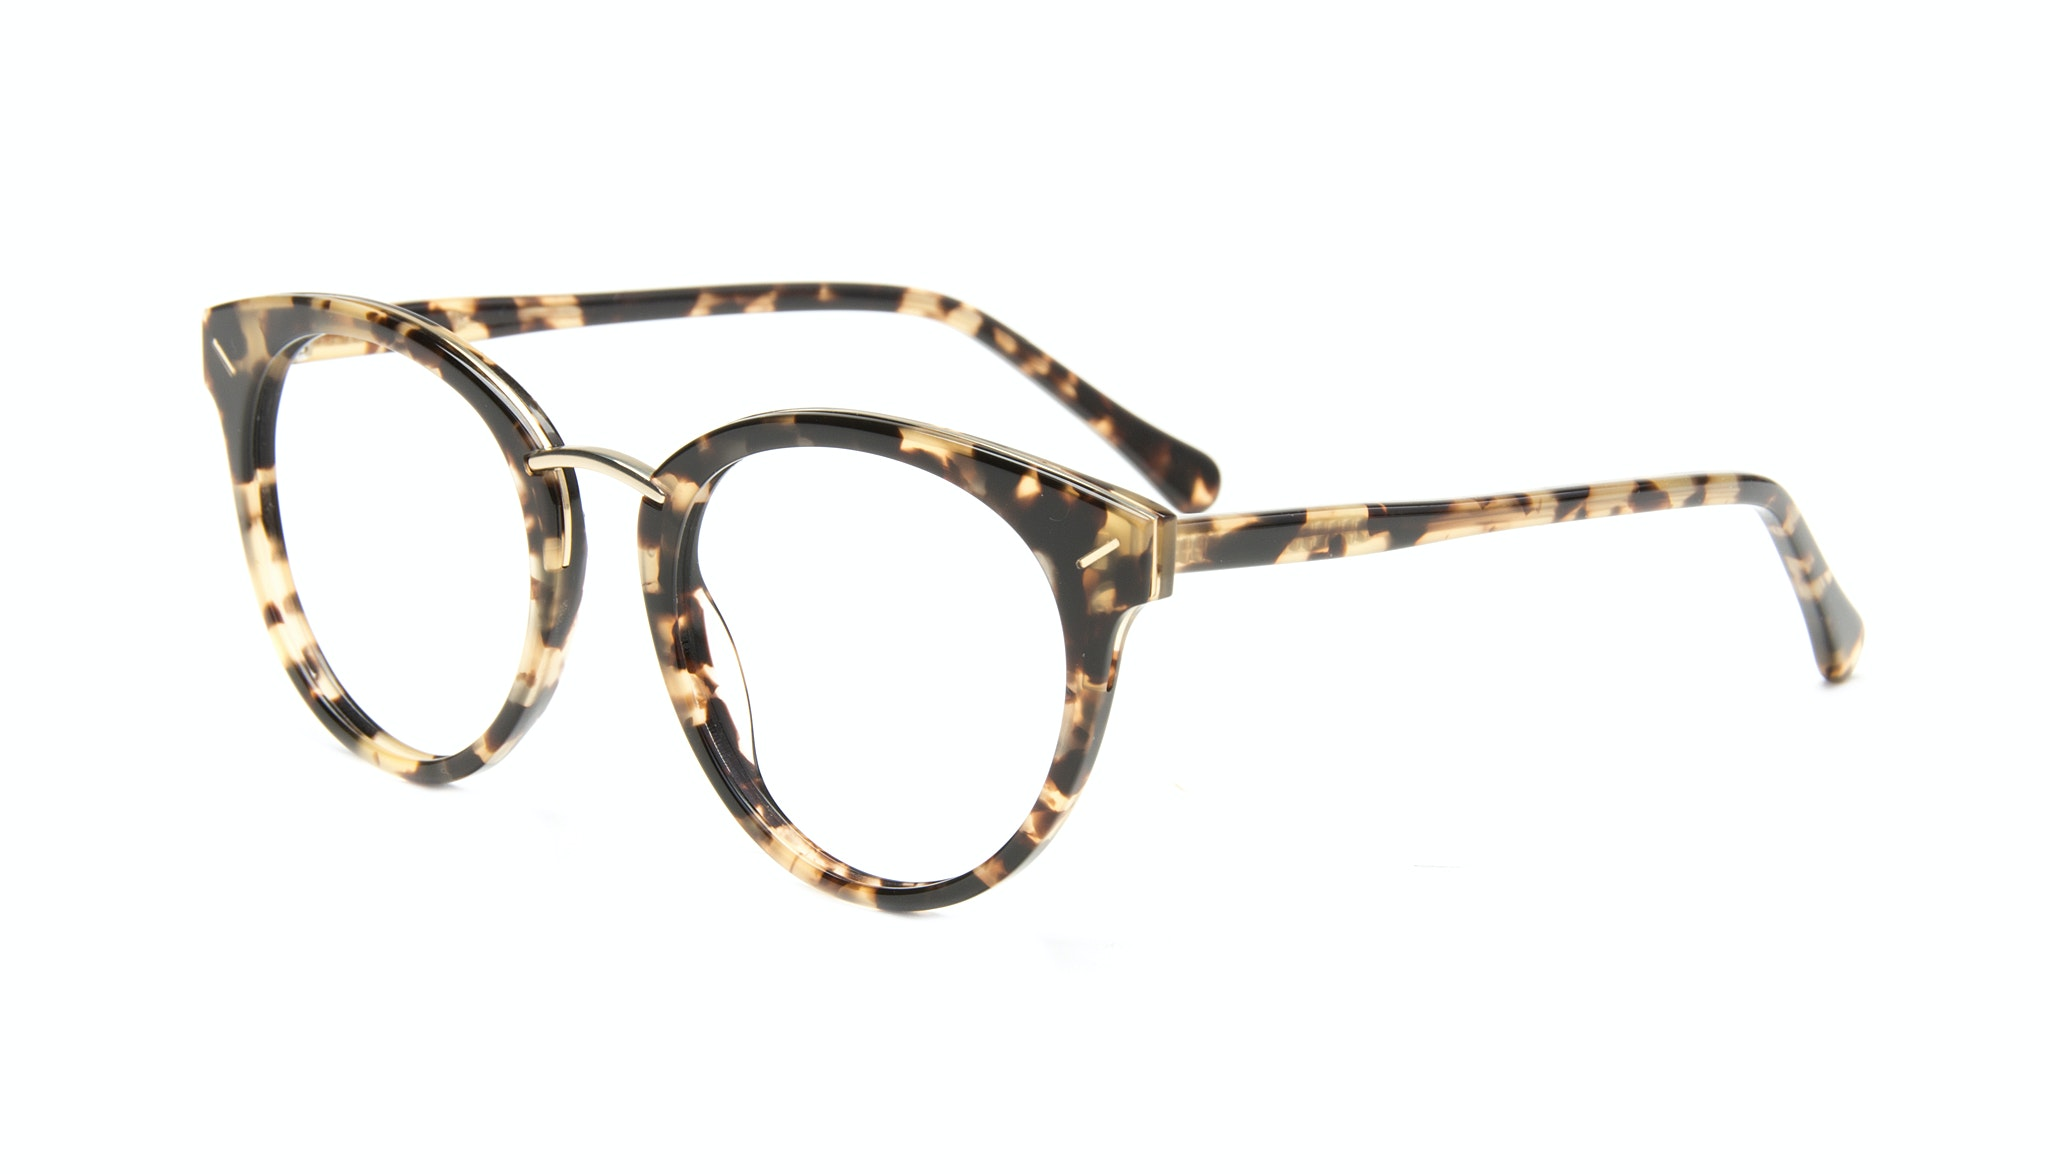 Affordable Fashion Glasses Cat Eye Round Eyeglasses Women Element Gold Tort Tilt